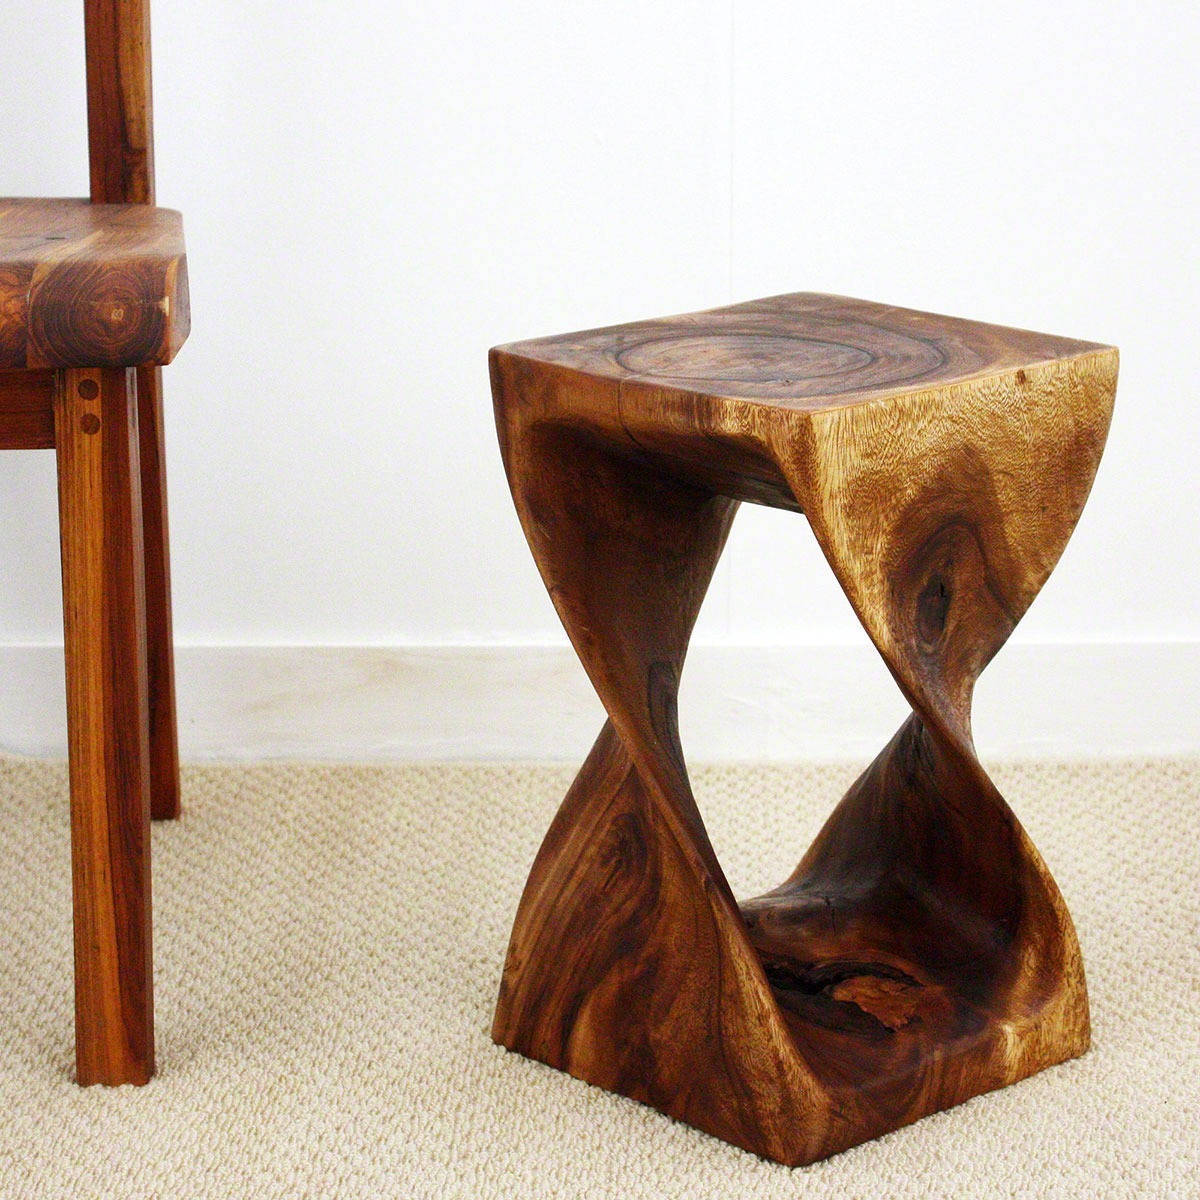 Handmade 10 Inches Square X 16 Inch Monkey Pod Wood Walnut Oil Finished Twist Stool Thailand On Free Shipping Today